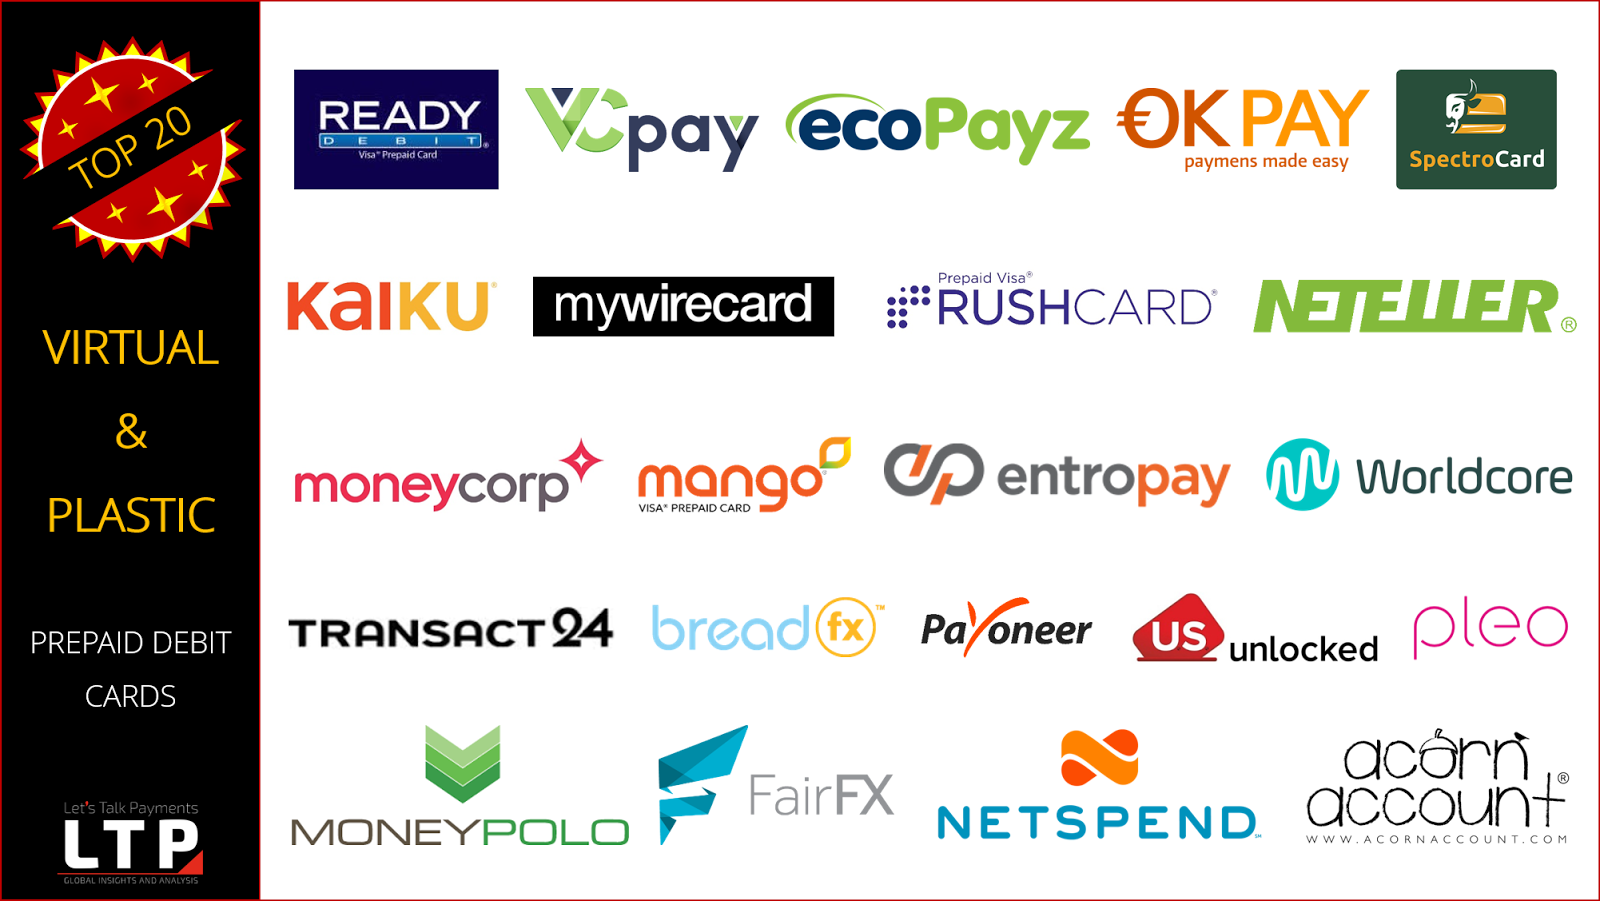 Top 20 virtual and plastic prepaid debit cards for hassle free entropay magicingreecefo Choice Image